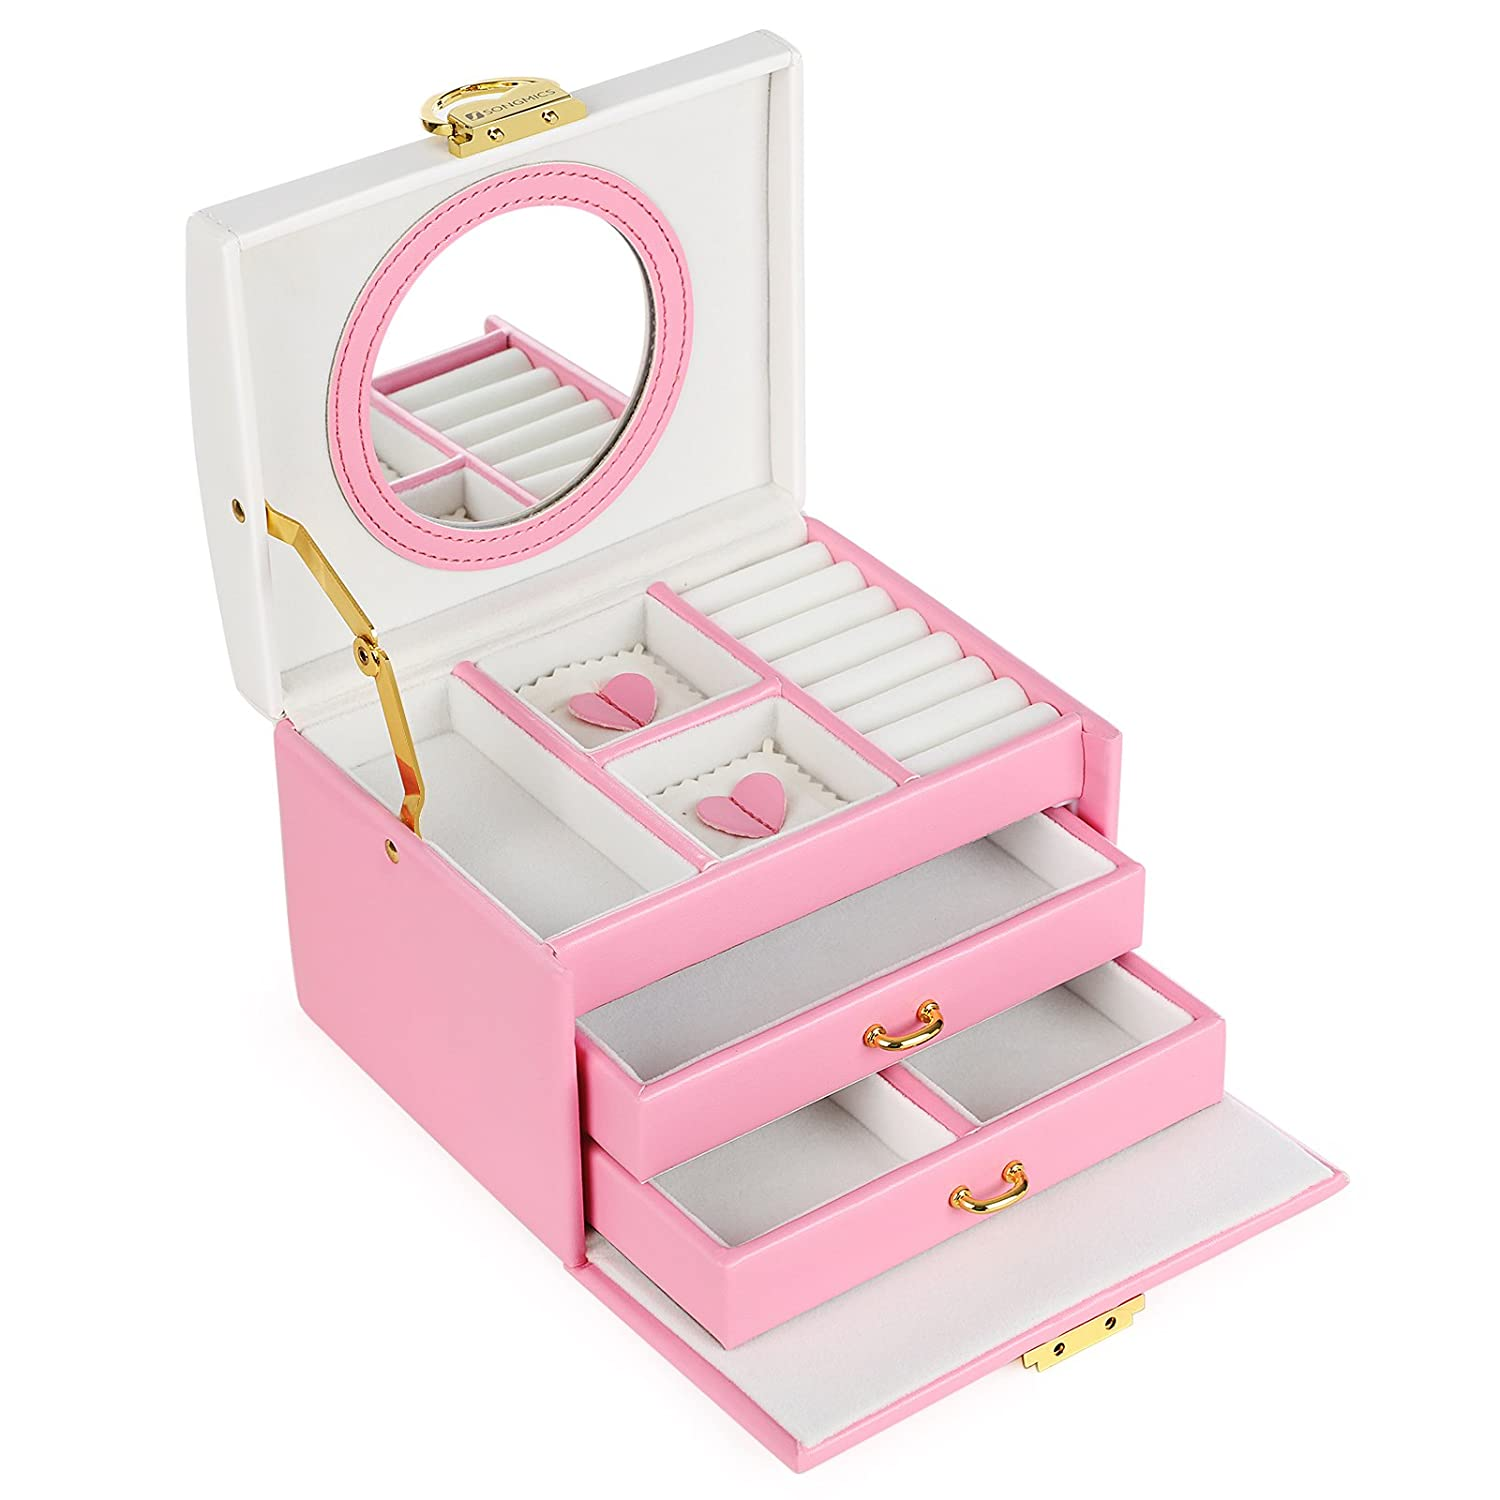 Songmics Jewelry Box With Bowknot Mirrored Compact Travel Case Gift